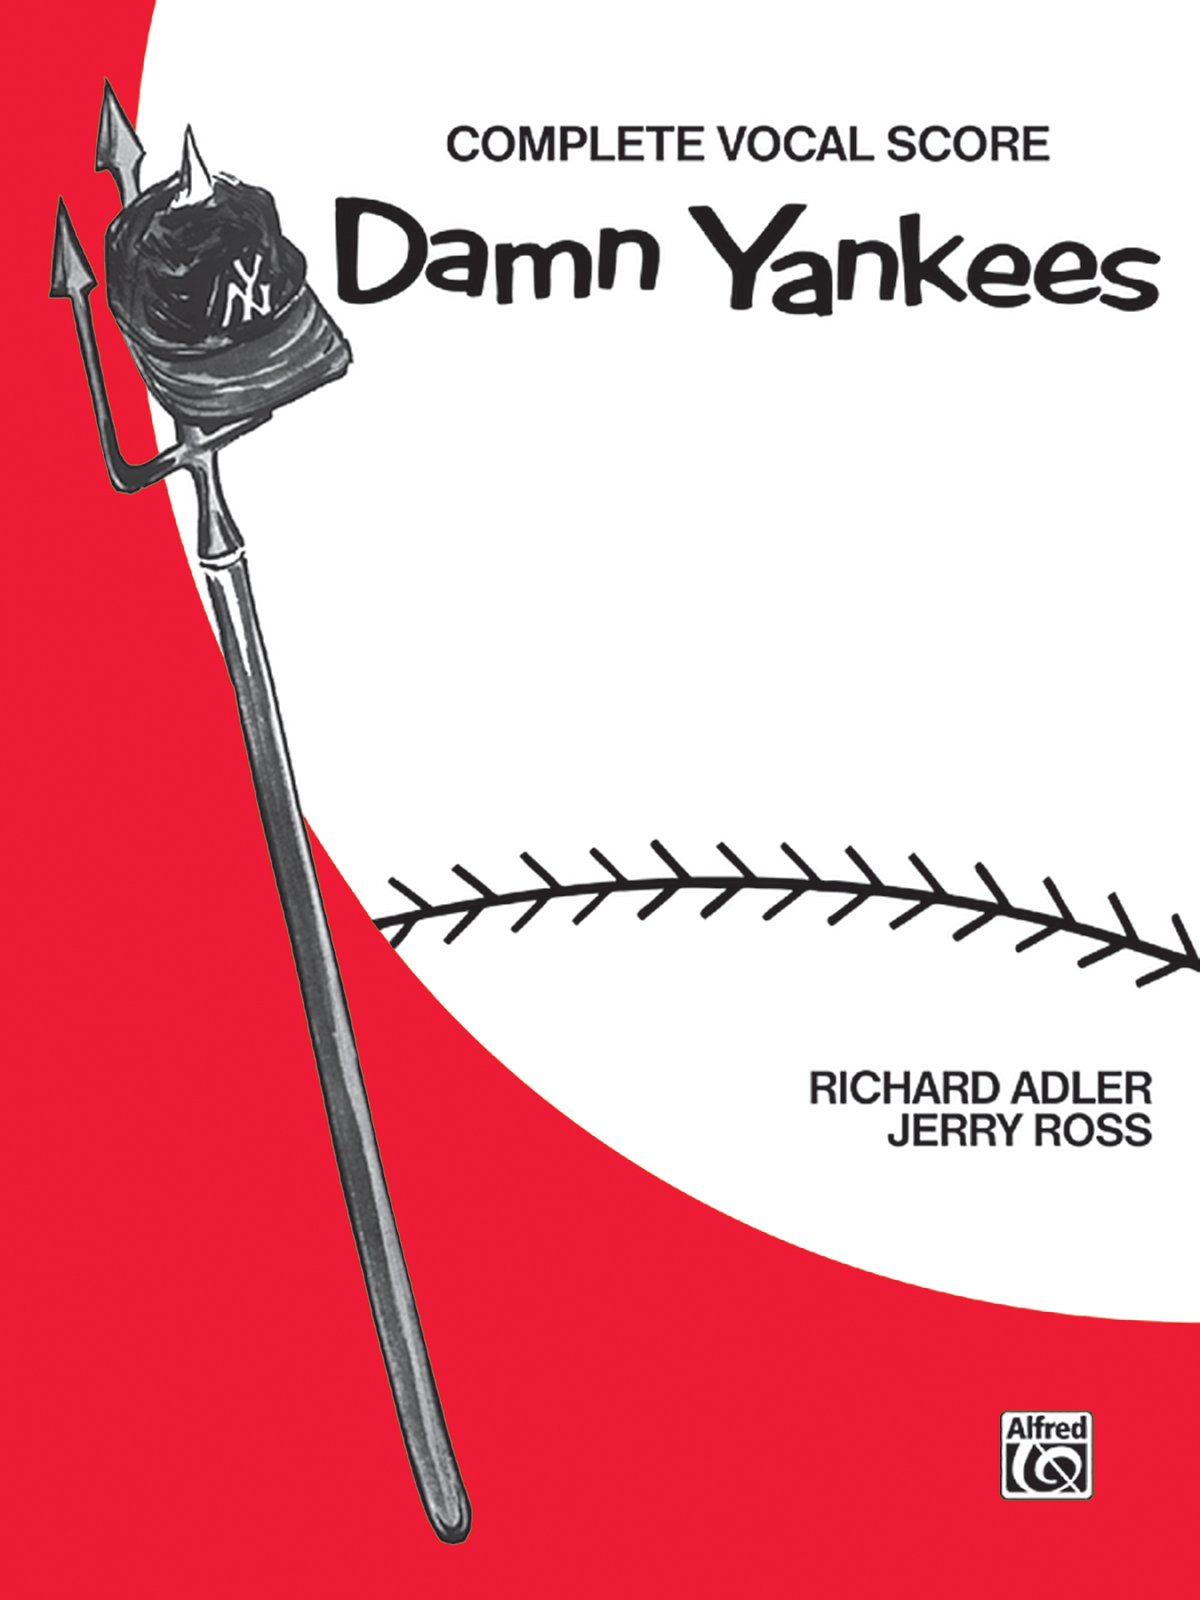 Damn Yankees Vocal Score Richard Adler Jerry Ross